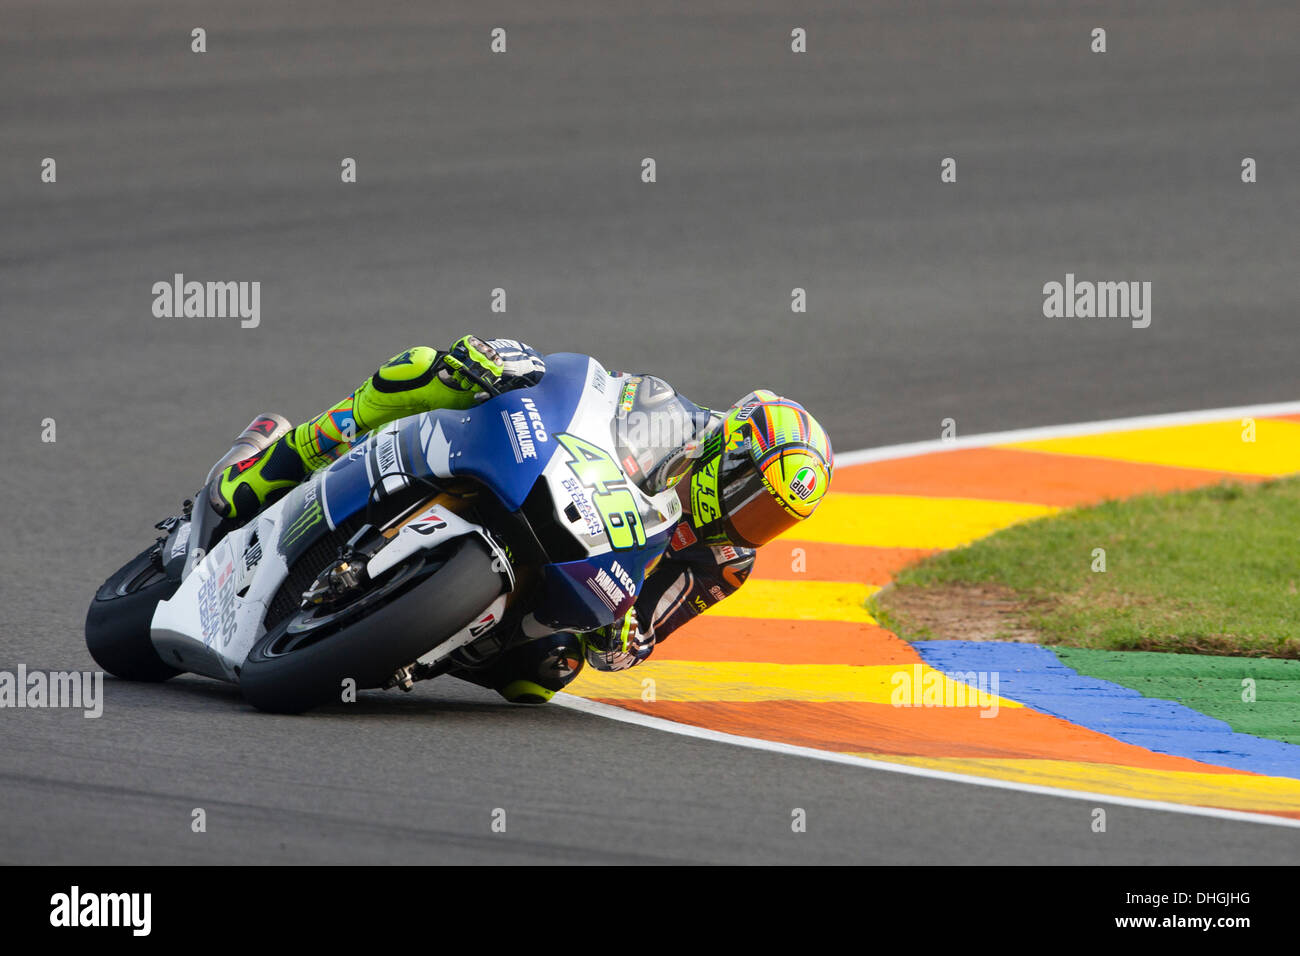 Cheste, Spain. 10th Nov, 2013. Valentino Rossi (ITA) Yamaha Factory Racing rider during Round 18 of the 2013 MotoGP World Championship from the Ricardo Tormo Valencia circuit in Spain. © Action Plus Sports/Alamy Live News Credit:  Action Plus Sports Images/Alamy Live News - Stock Image